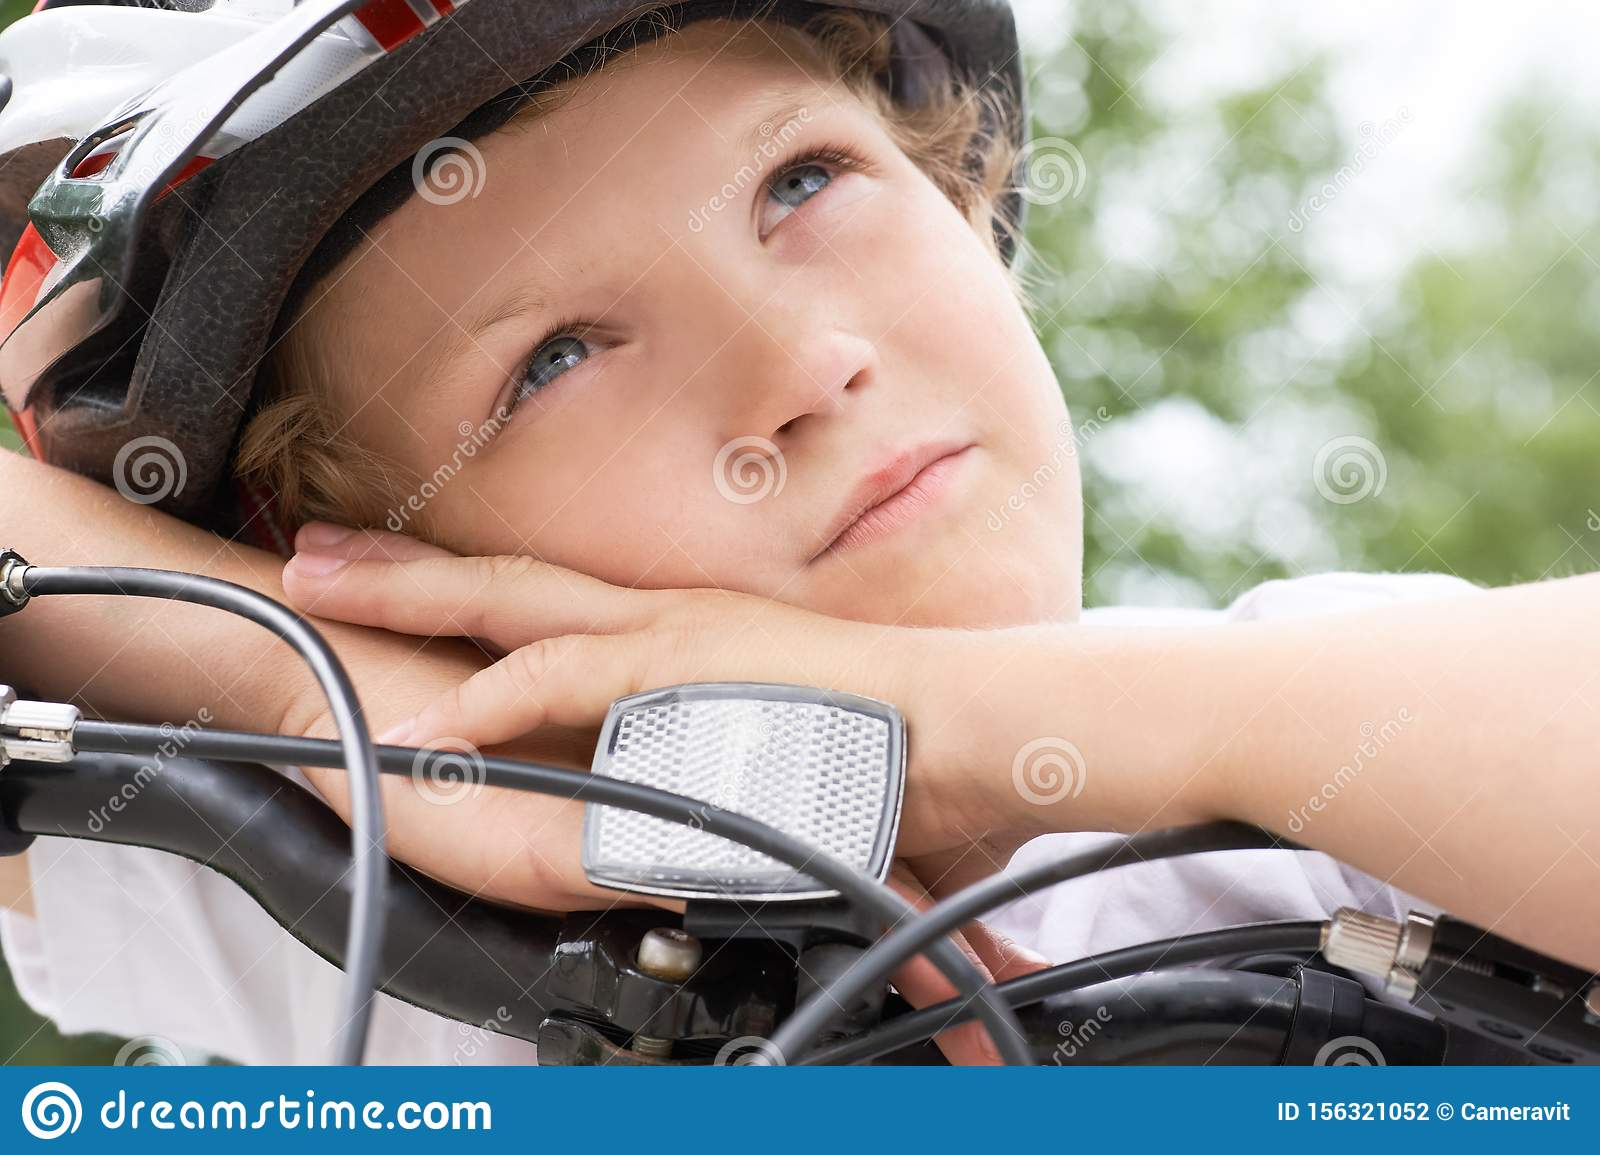 Small Caucasian boy cyclist in protective helmet put his head on the handlebar of the bike posing for the camera. Boy